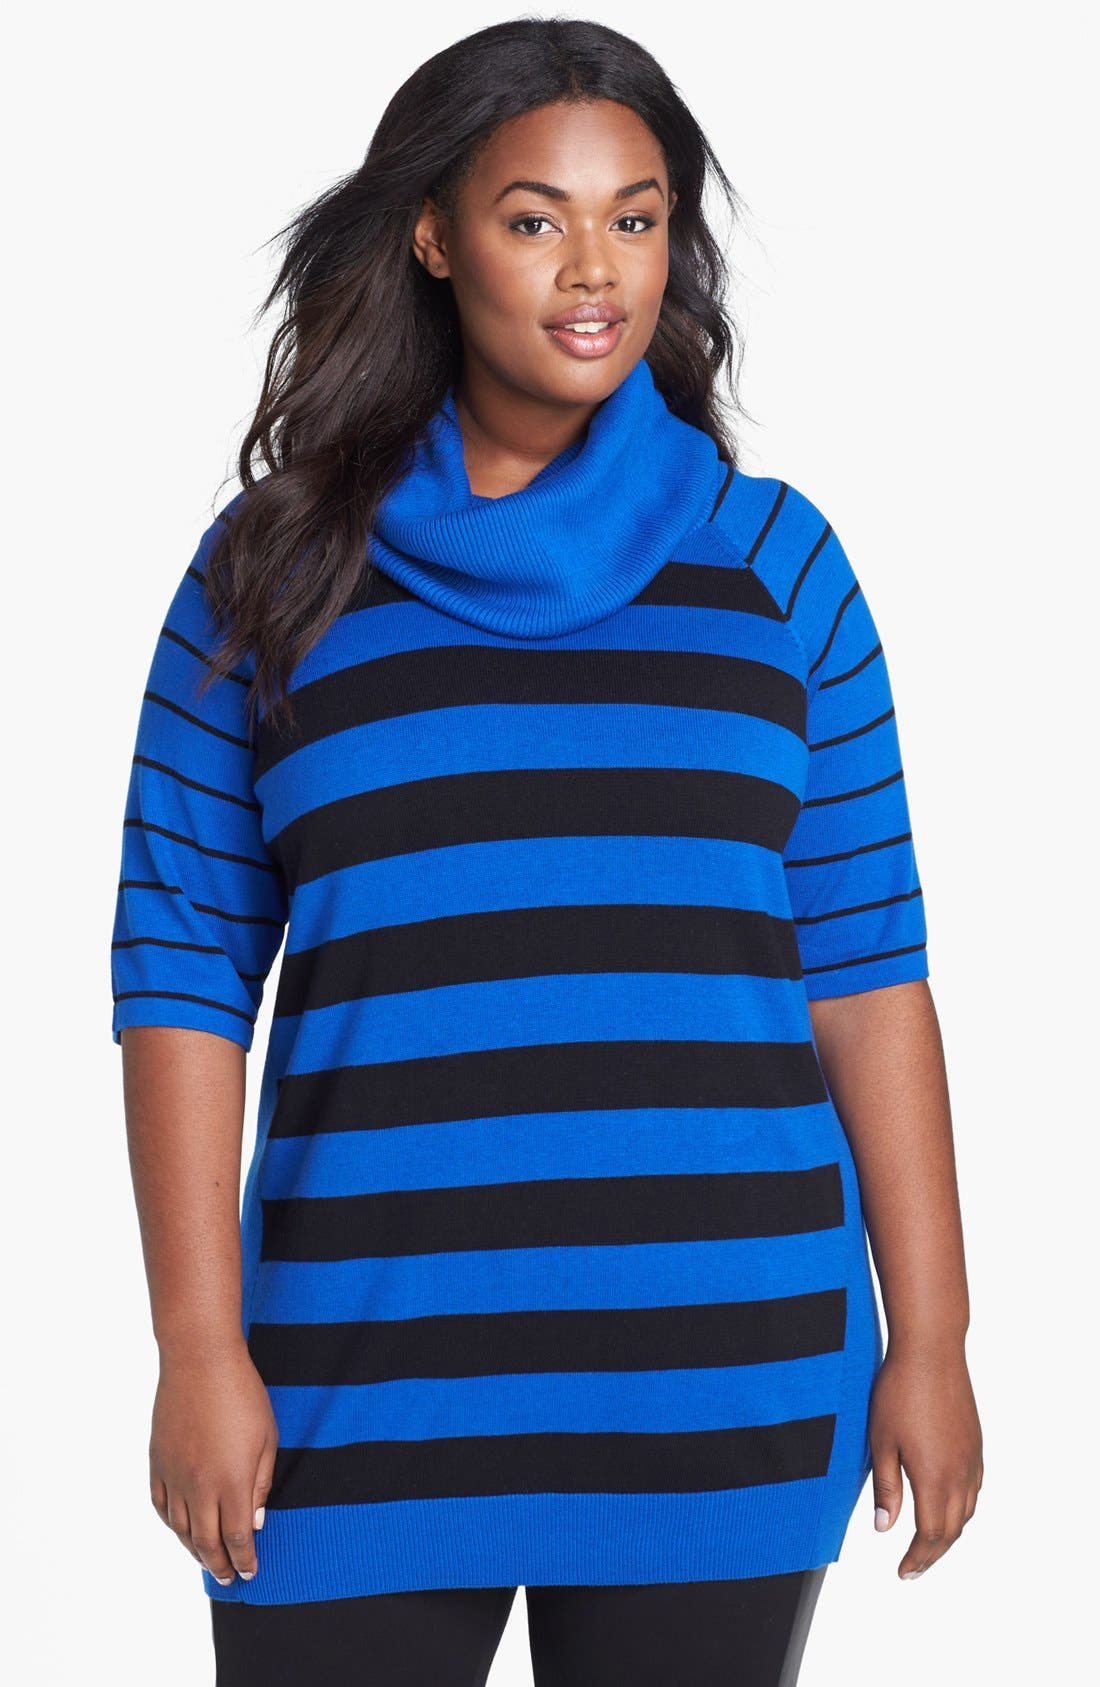 Alternate Image 1 Selected - Vince Camuto Stripe Cowl Neck Sweater (Plus Size)